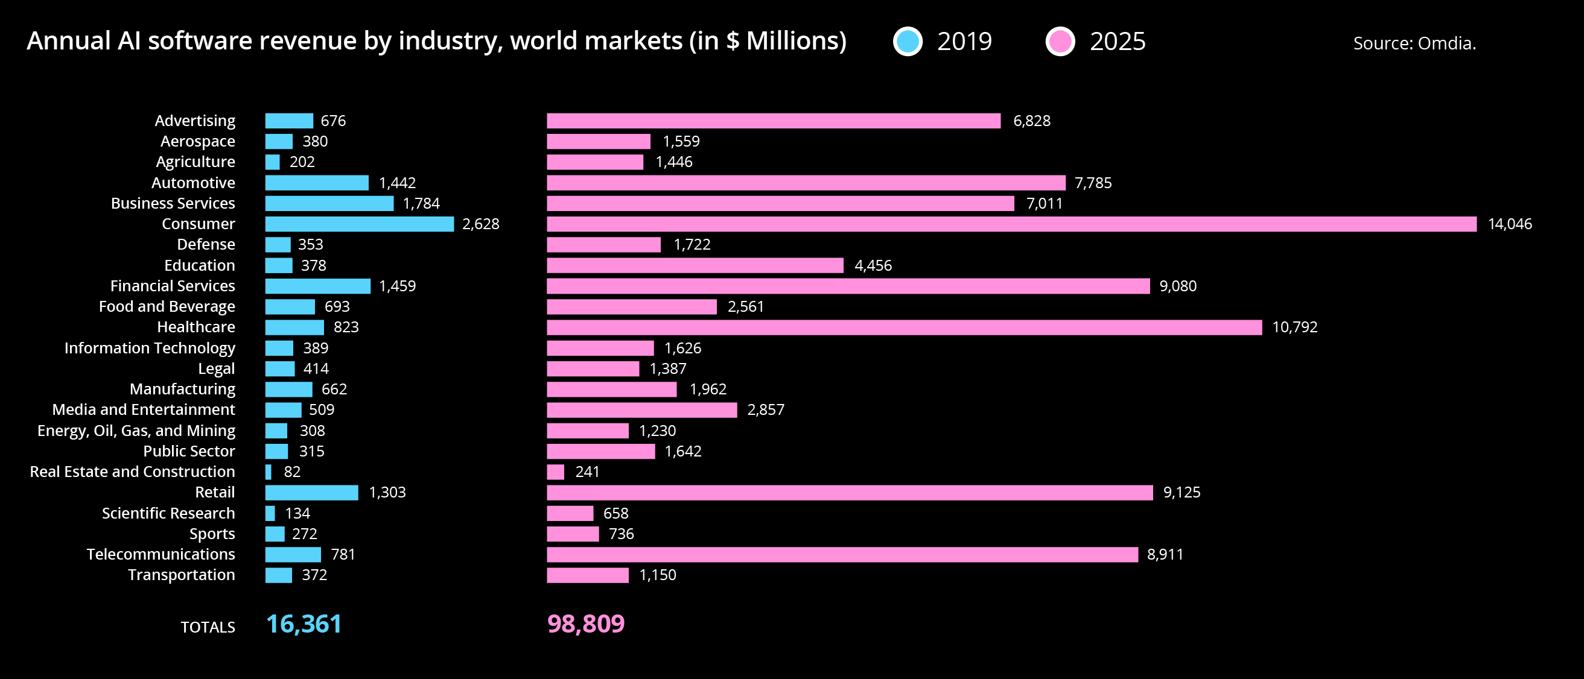 Annual AI software revenue by industry world markets in USD Millions